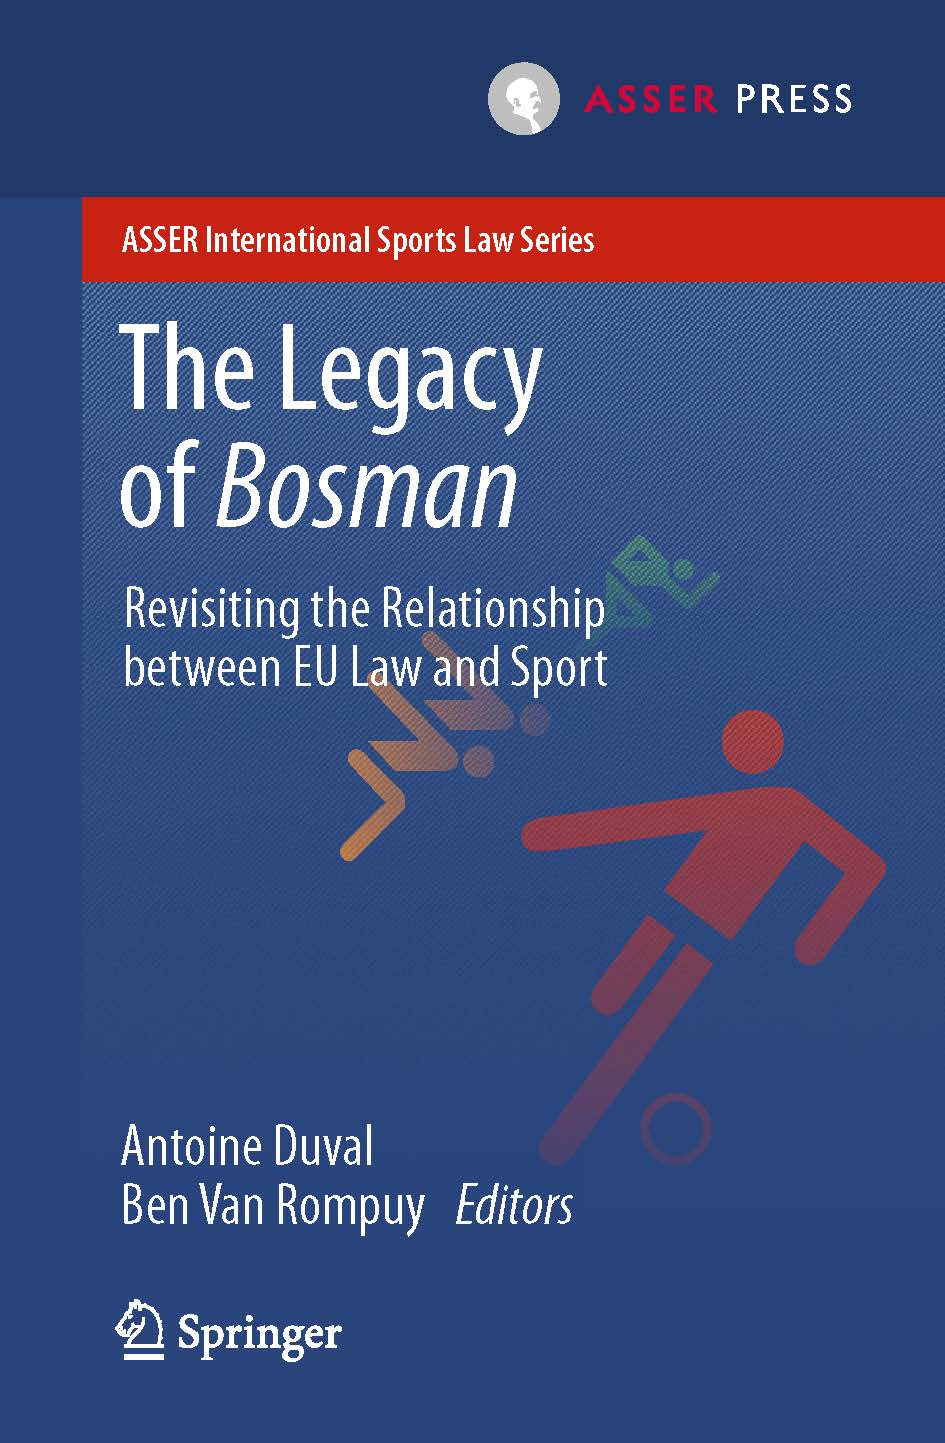 The Legacy of Bosman - Revisiting the Relationship between EU Law and Sport